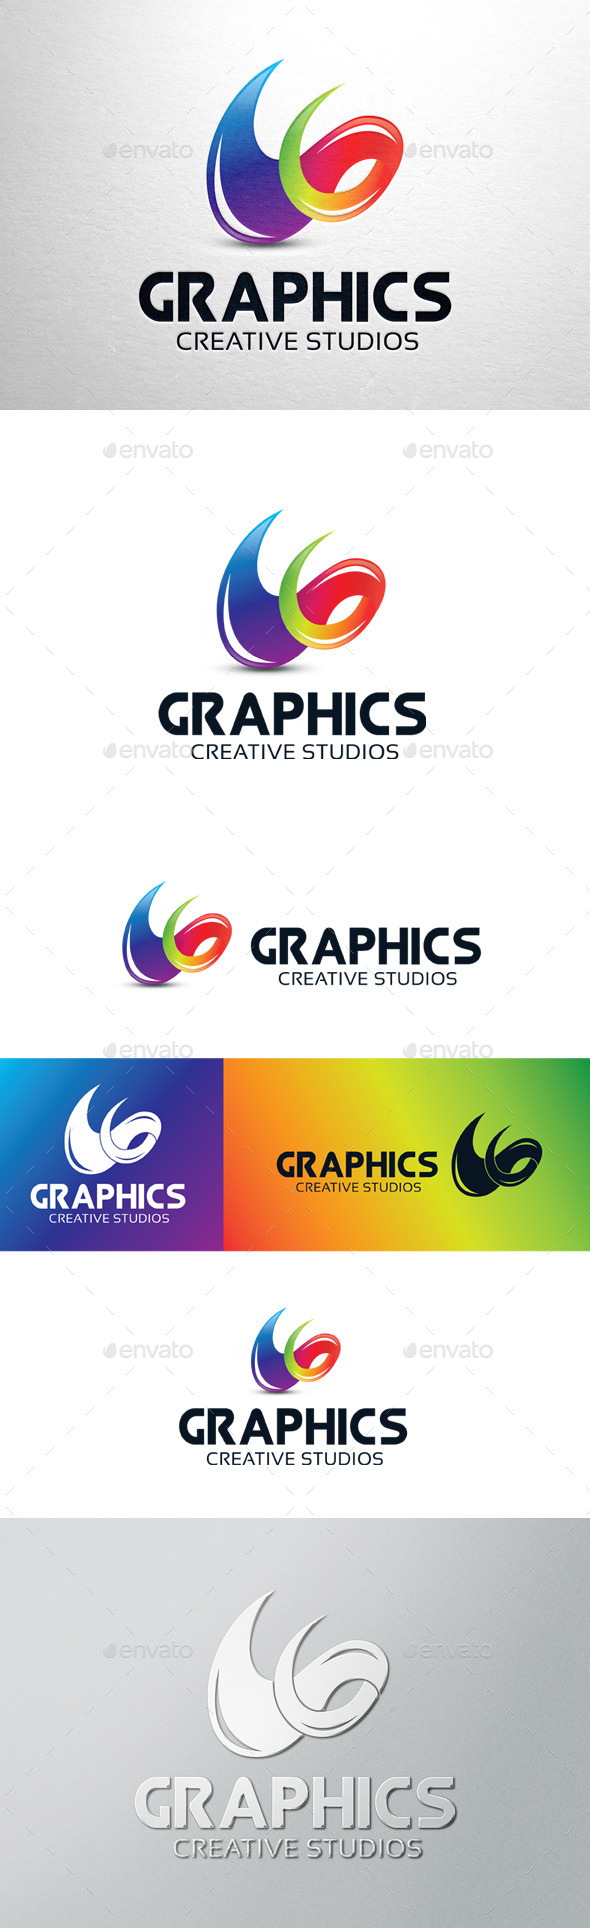 GraphicRiver Abstract Graphics Logo 11478899